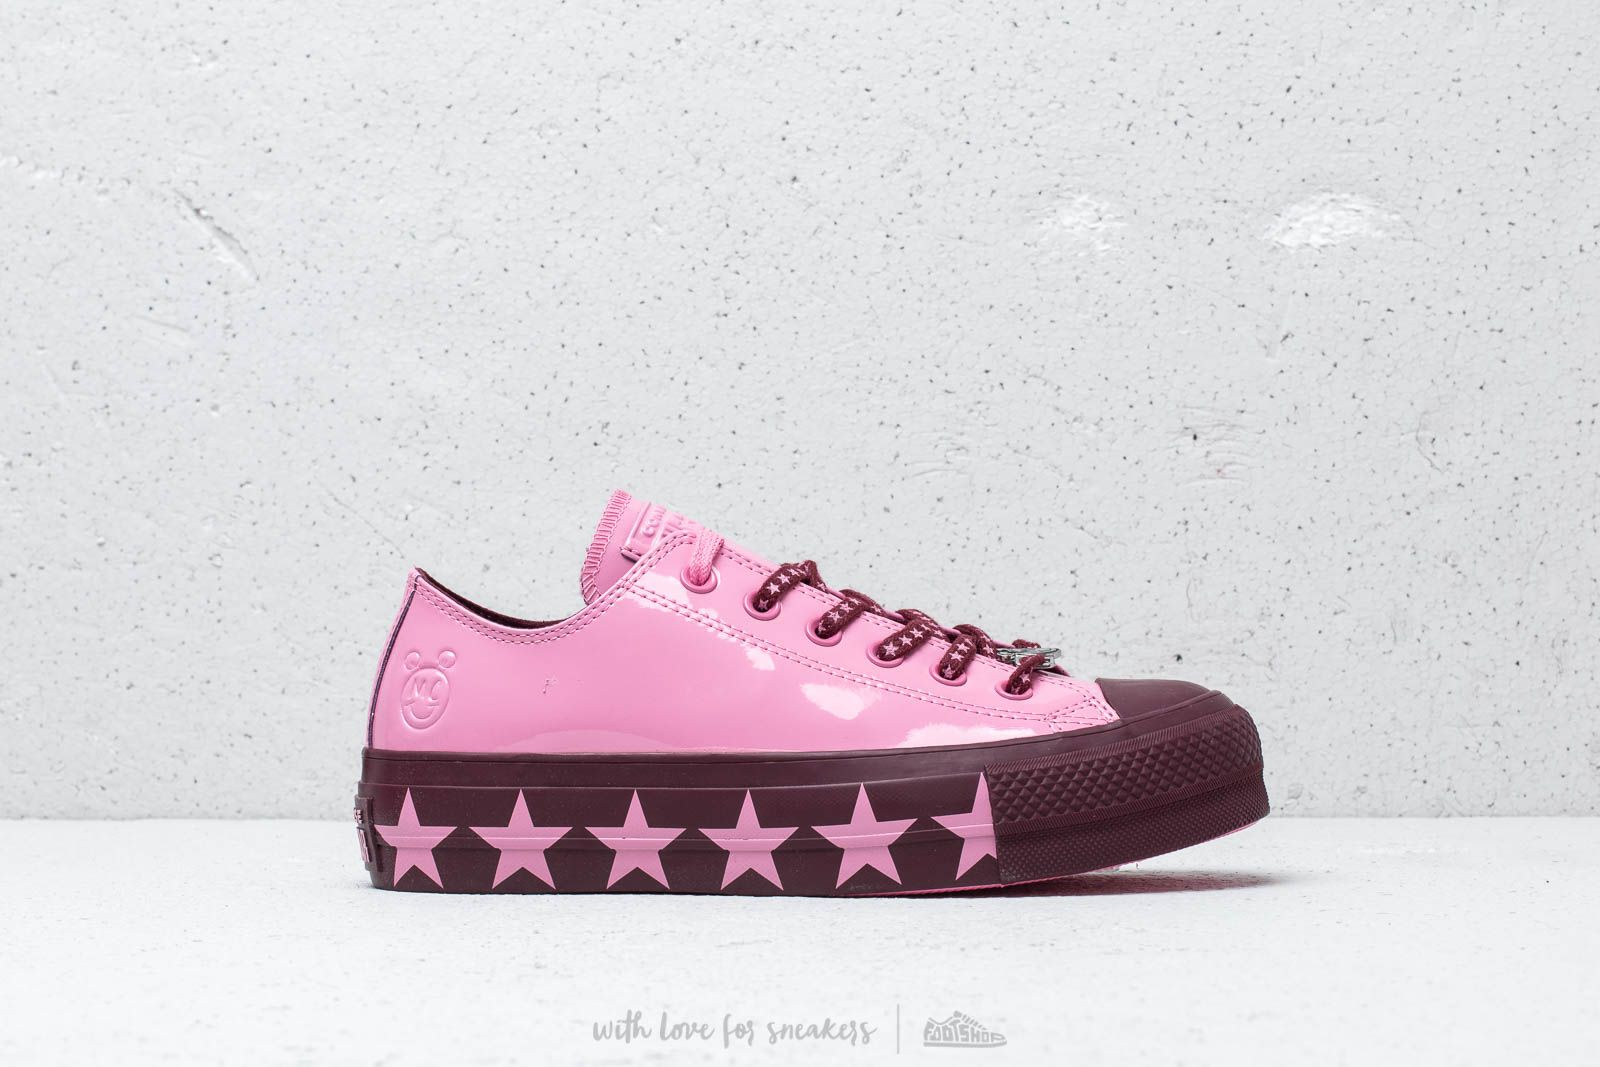 a9acff0c29f1 Converse x Miley Cyrus Chuck Taylor All Star Lift Ox Pink  Dark Burgundy   Pink